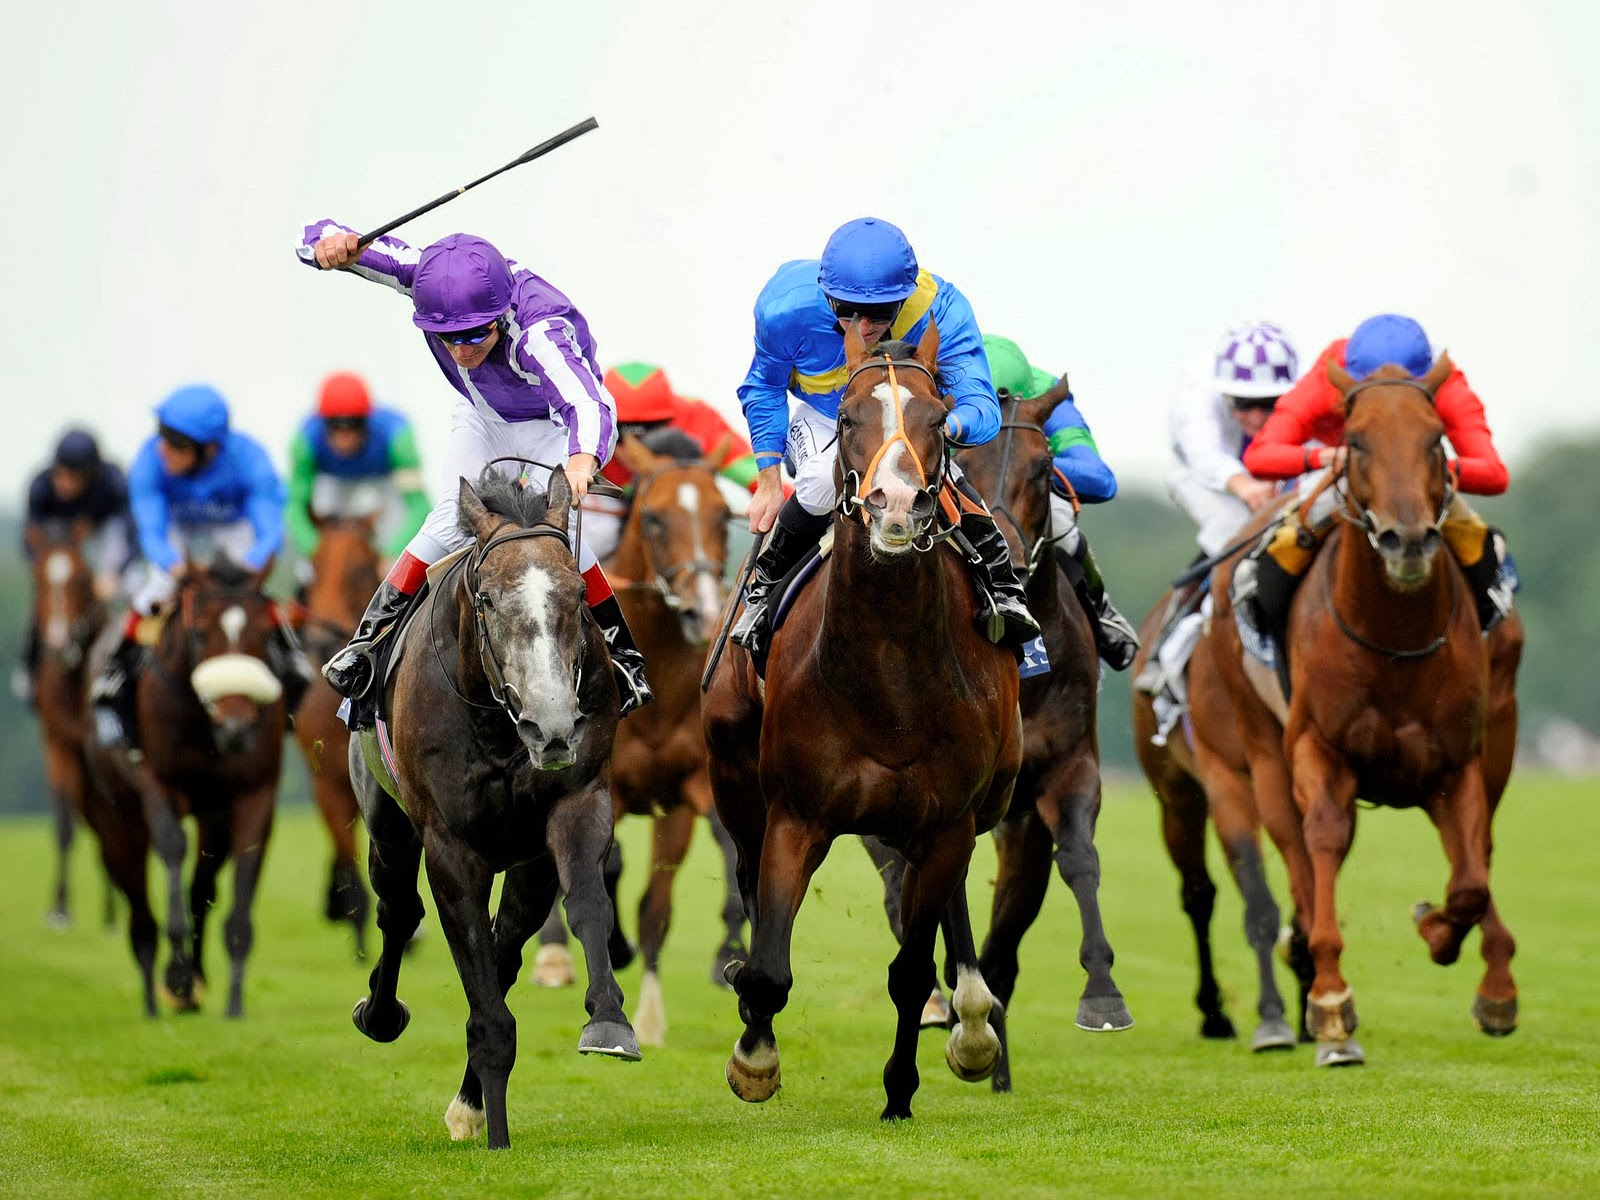 How To Be A Successful Horse Racing Gambler